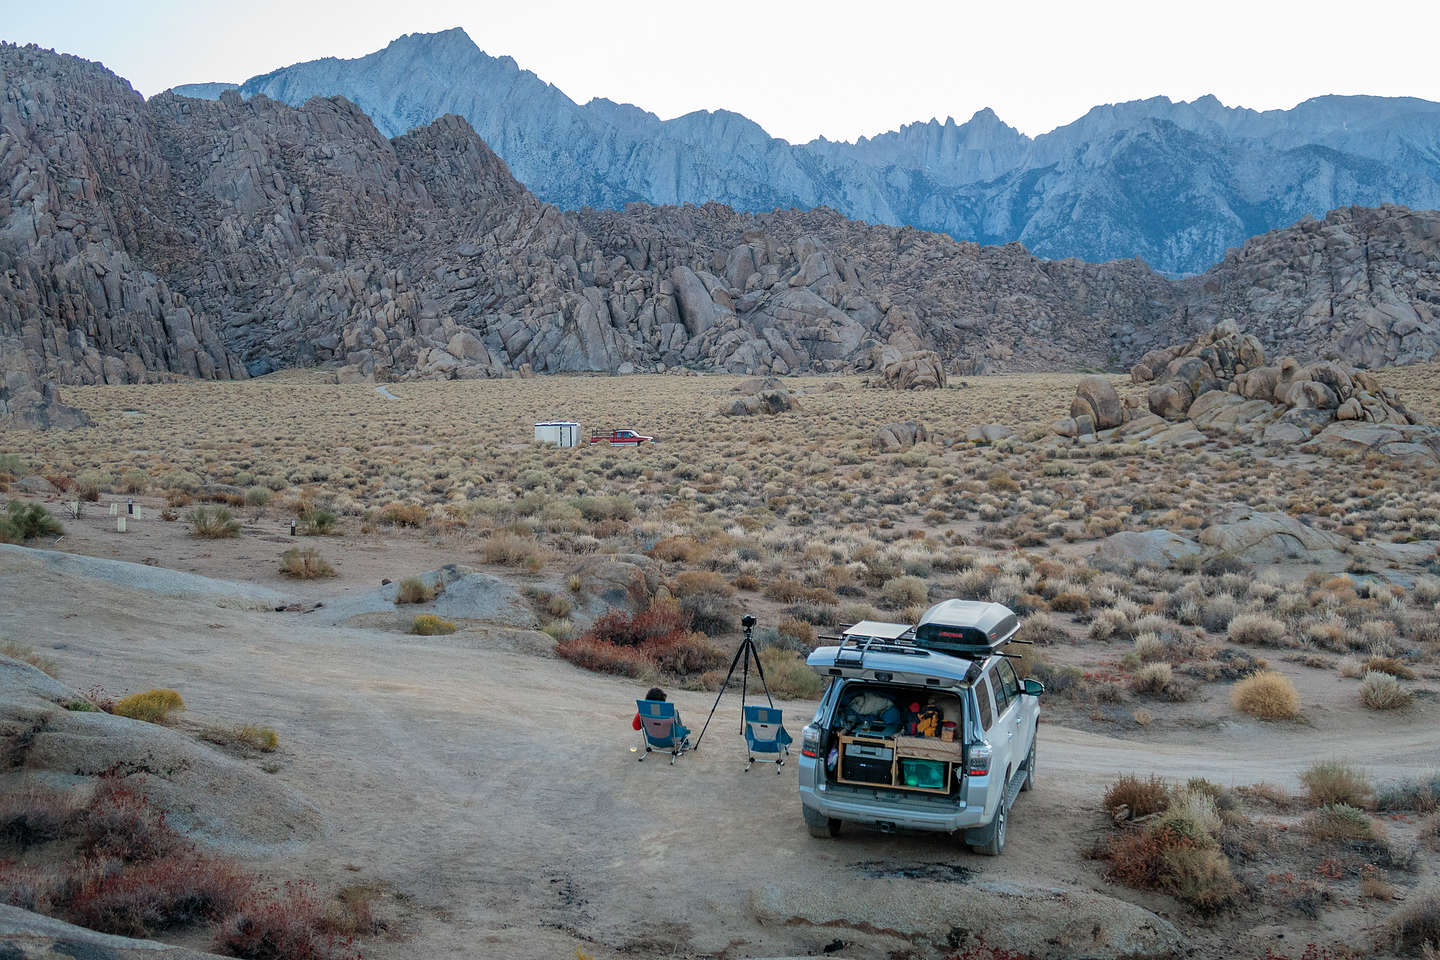 Our camping spot in the Alabama Hills